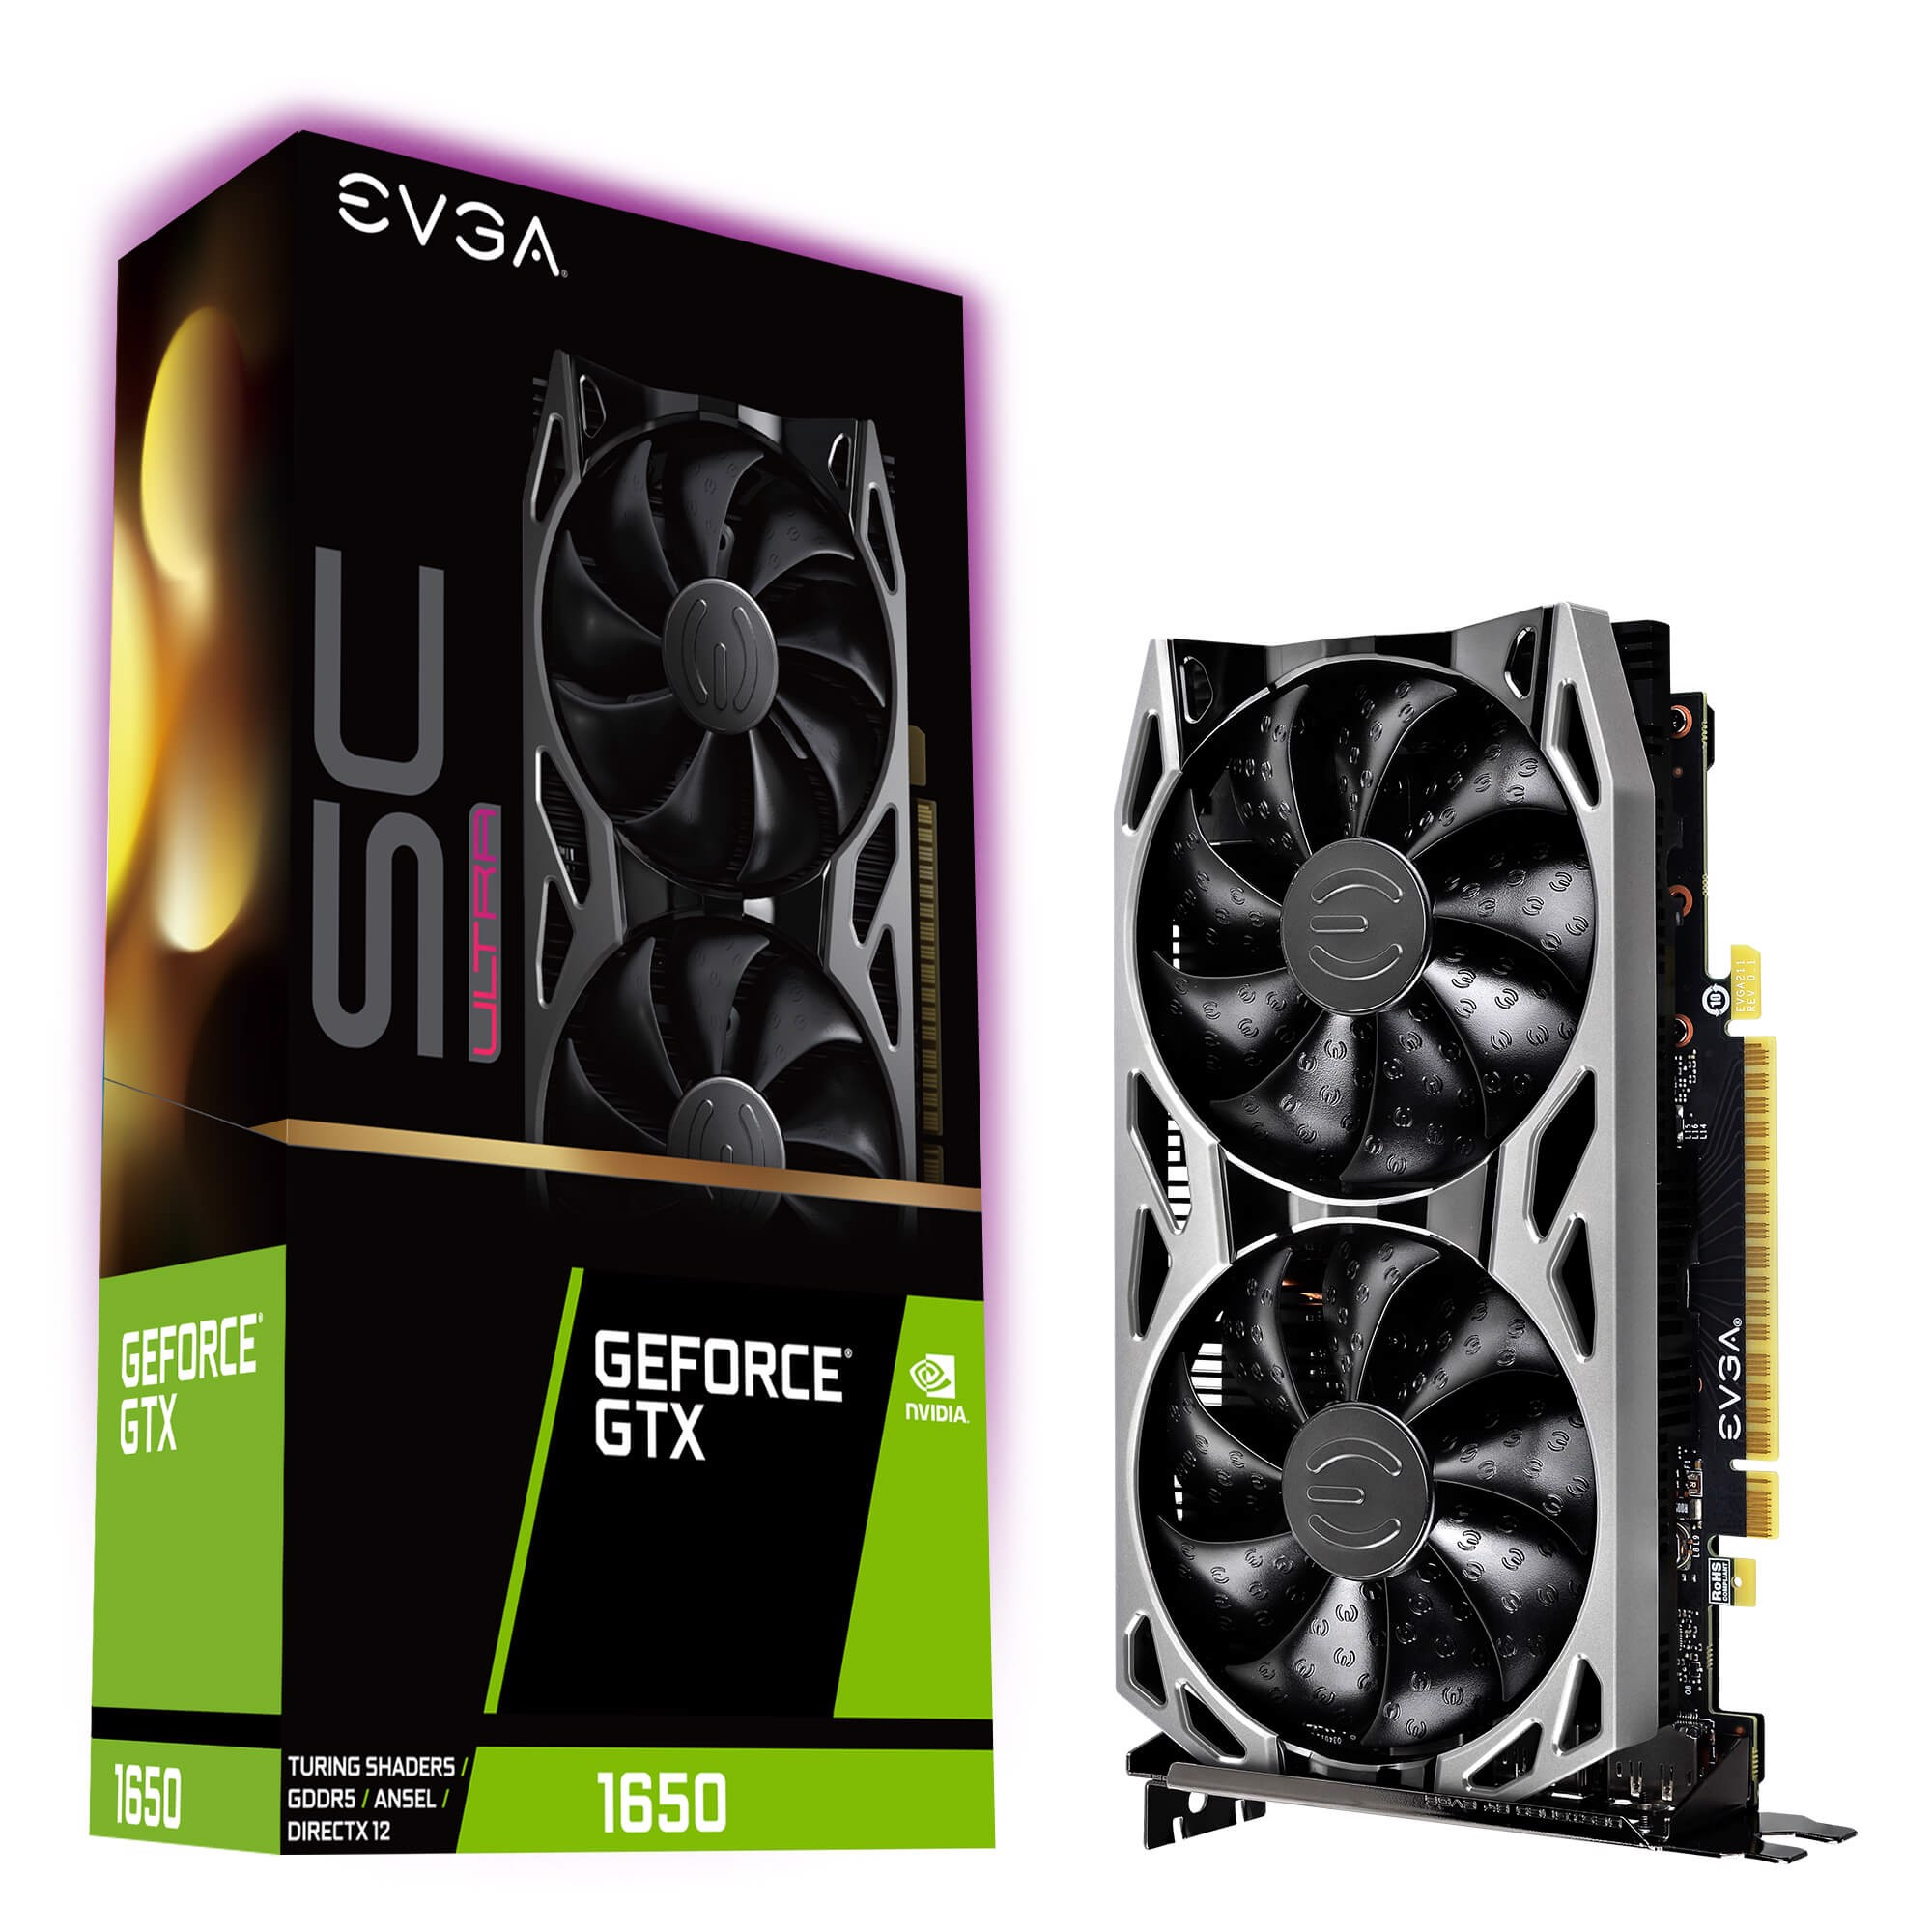 EVGA GeForce GTX 1650 SC ULTRA GAMING 4GB GDDR5